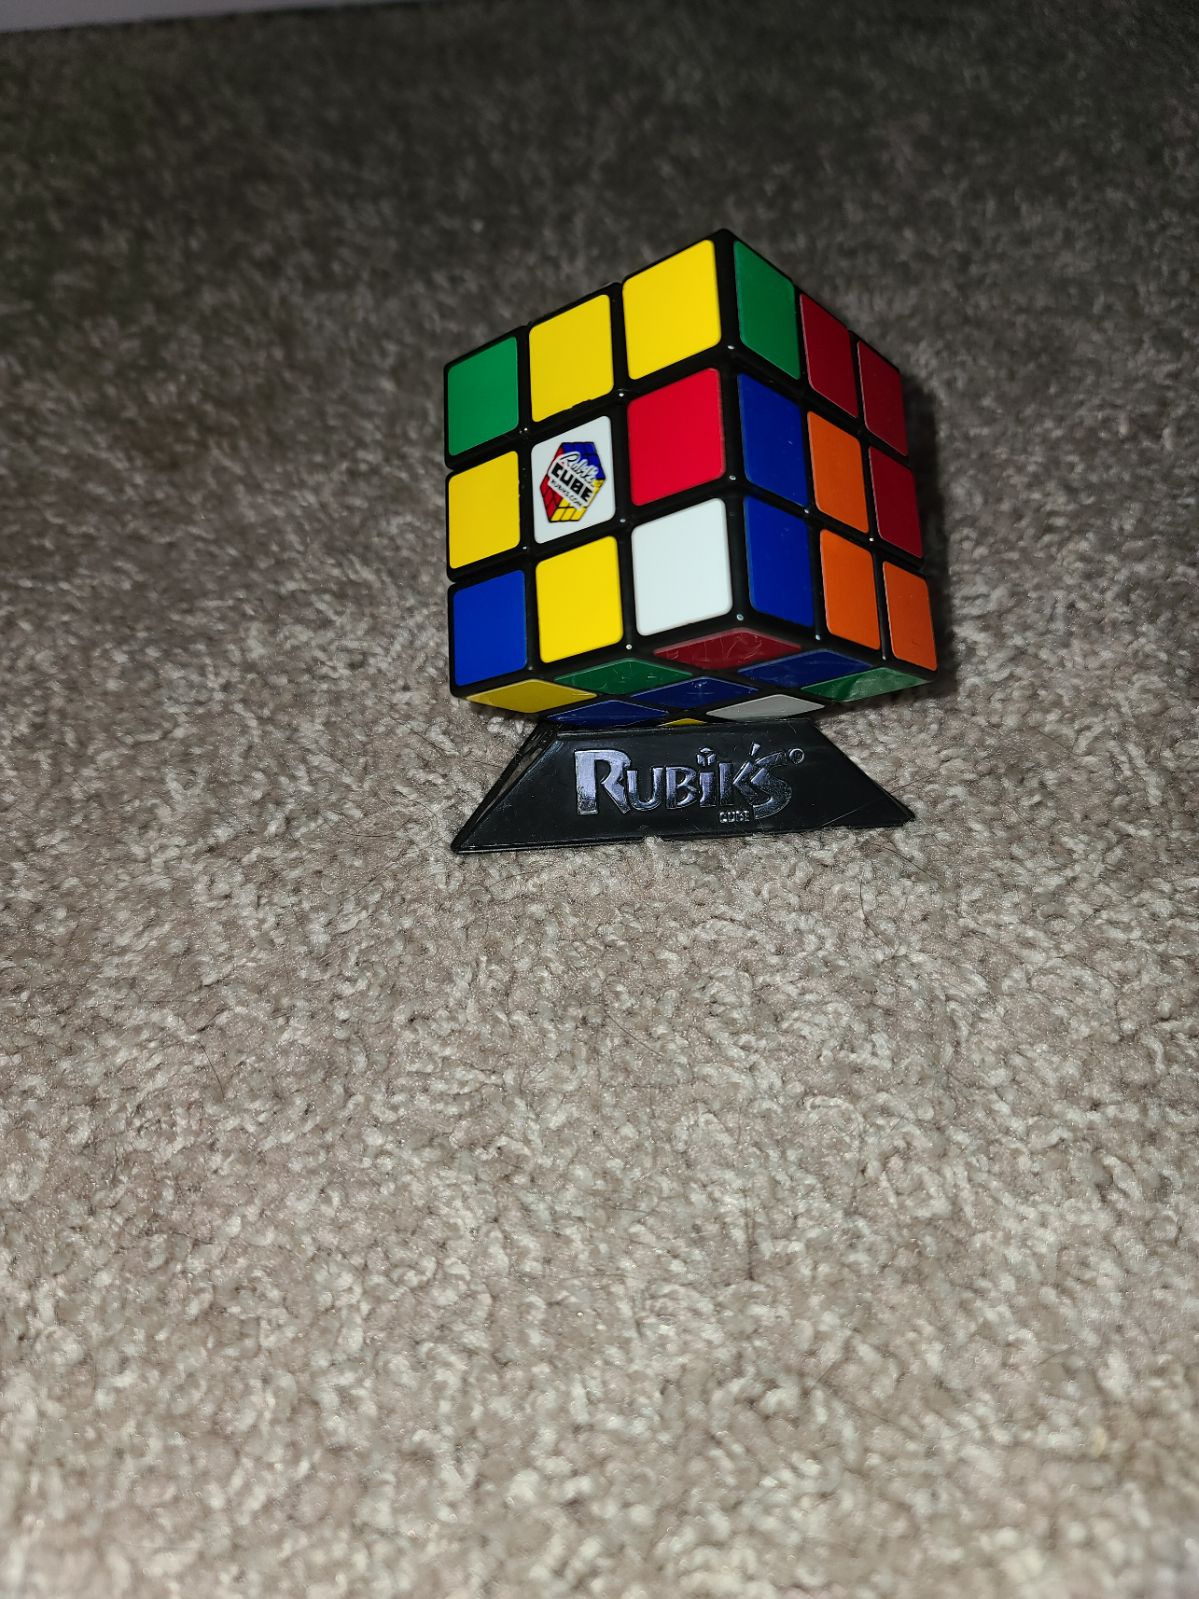 Rubiks Cube with stand